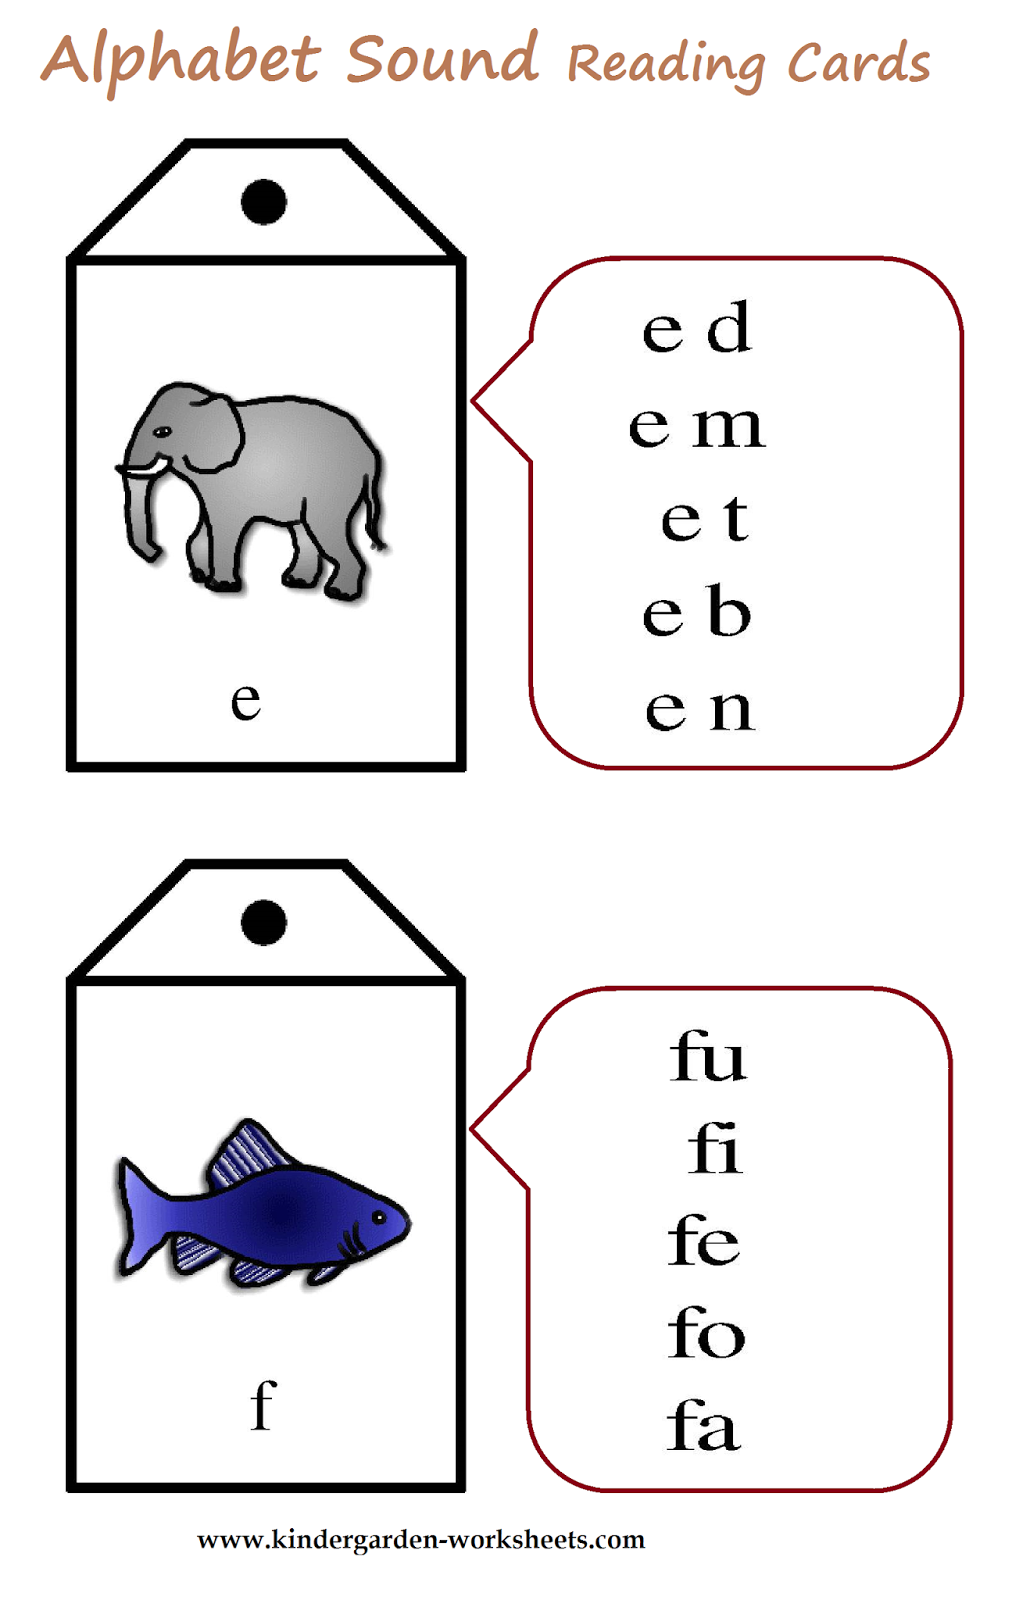 math worksheet : kindergarten worksheets alphabet sound read cards : T Worksheets For Kindergarten